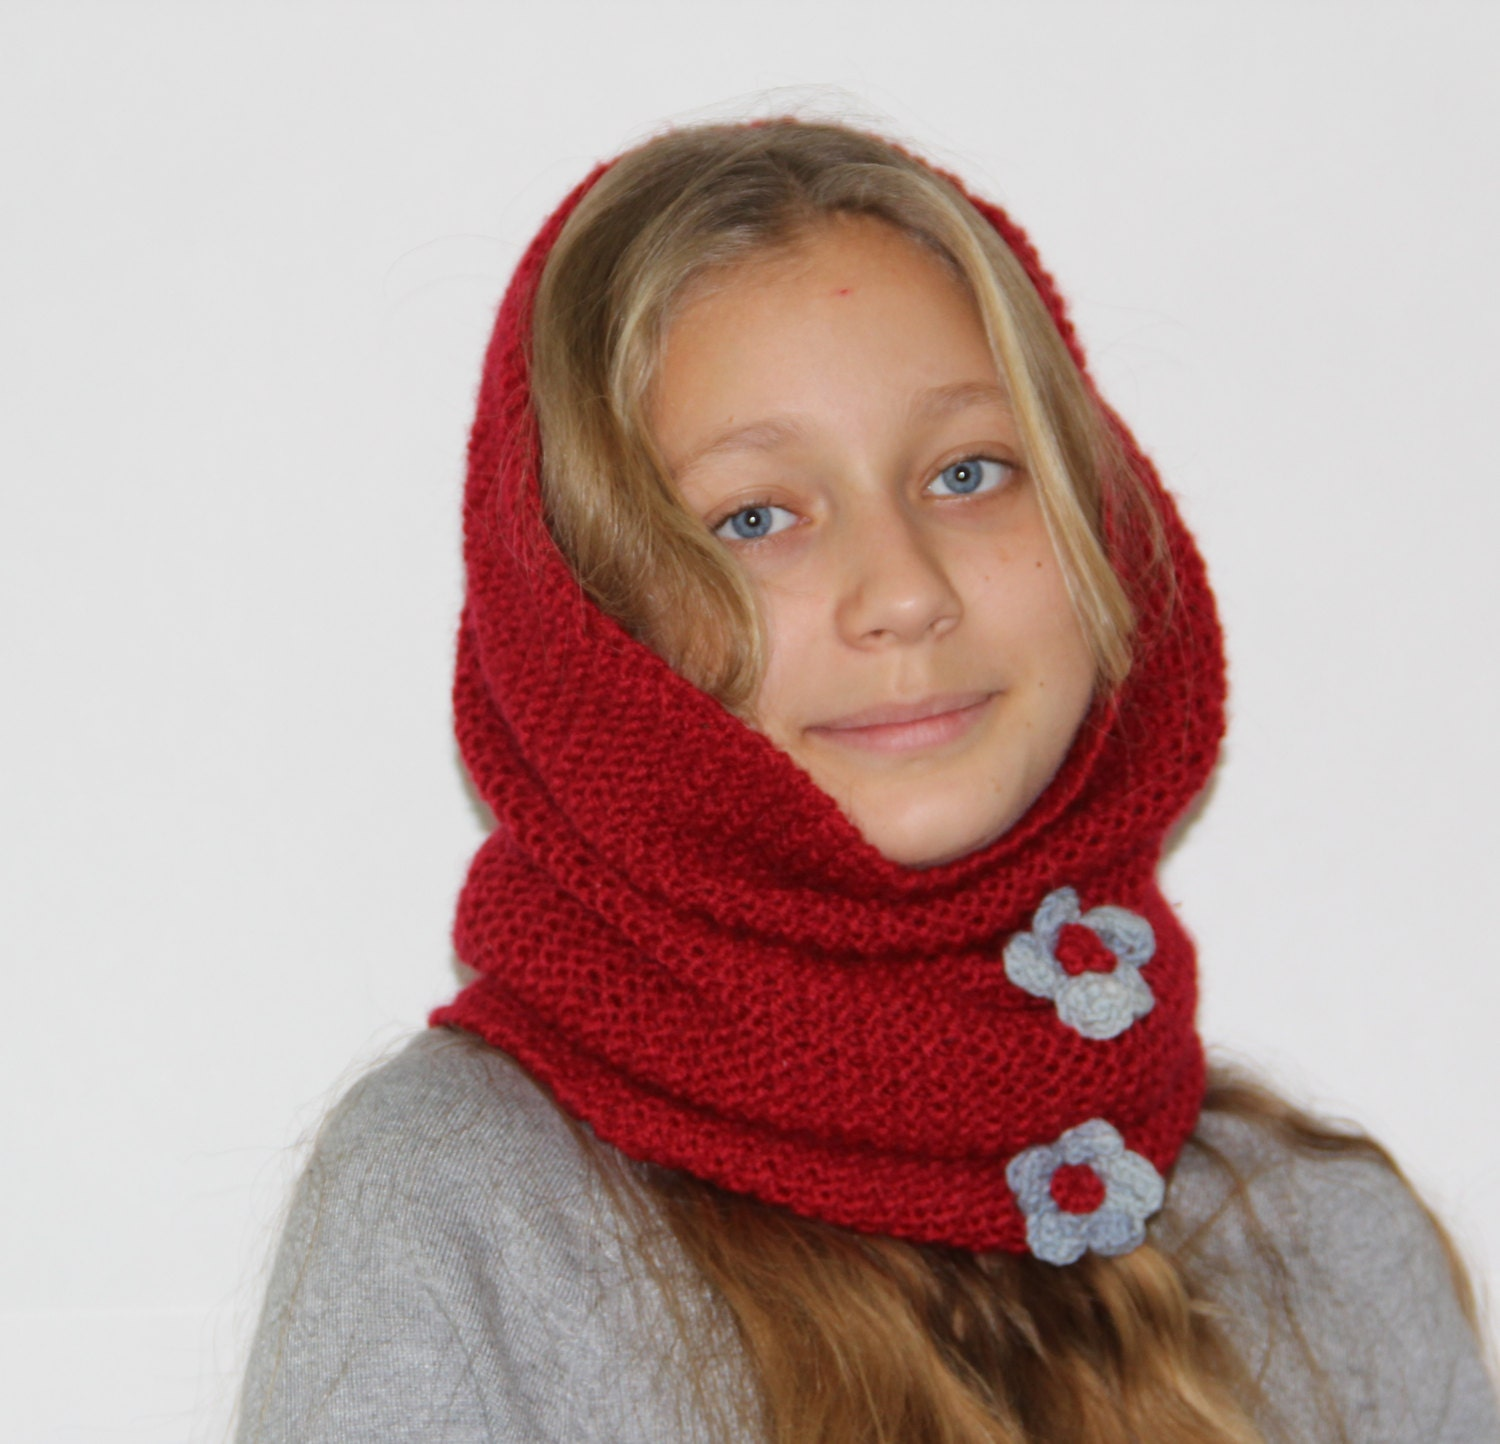 In terms of fashion trends, a snood scarf is a tubular scarf quite different from other scarves. Earlier ladies used to wear snood to cover the hair in style.